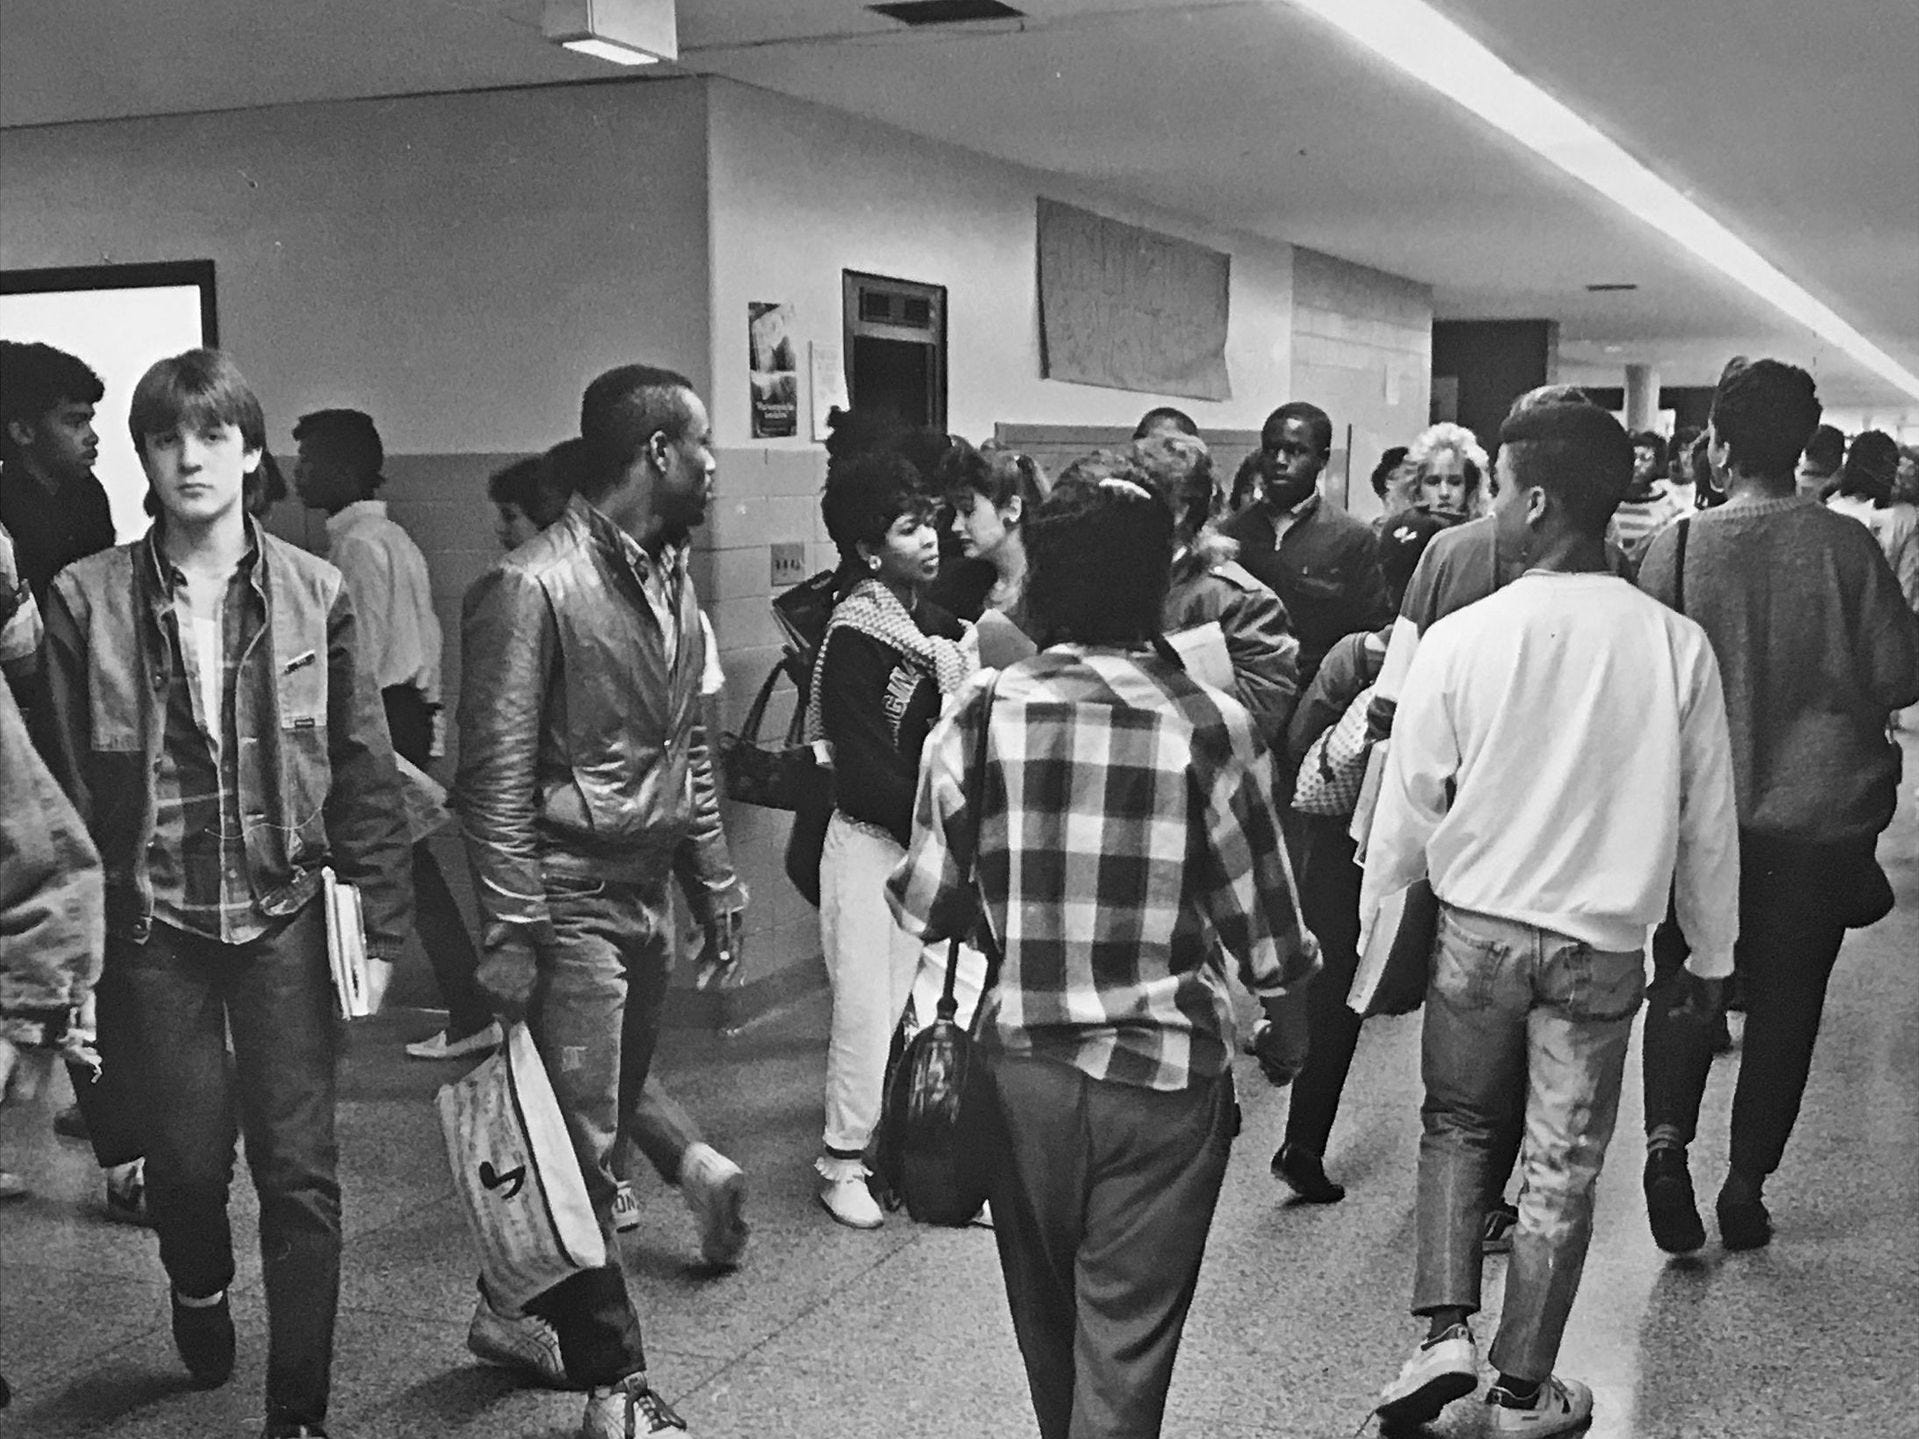 Students in the corridors at Arlington during a case change in 1986.